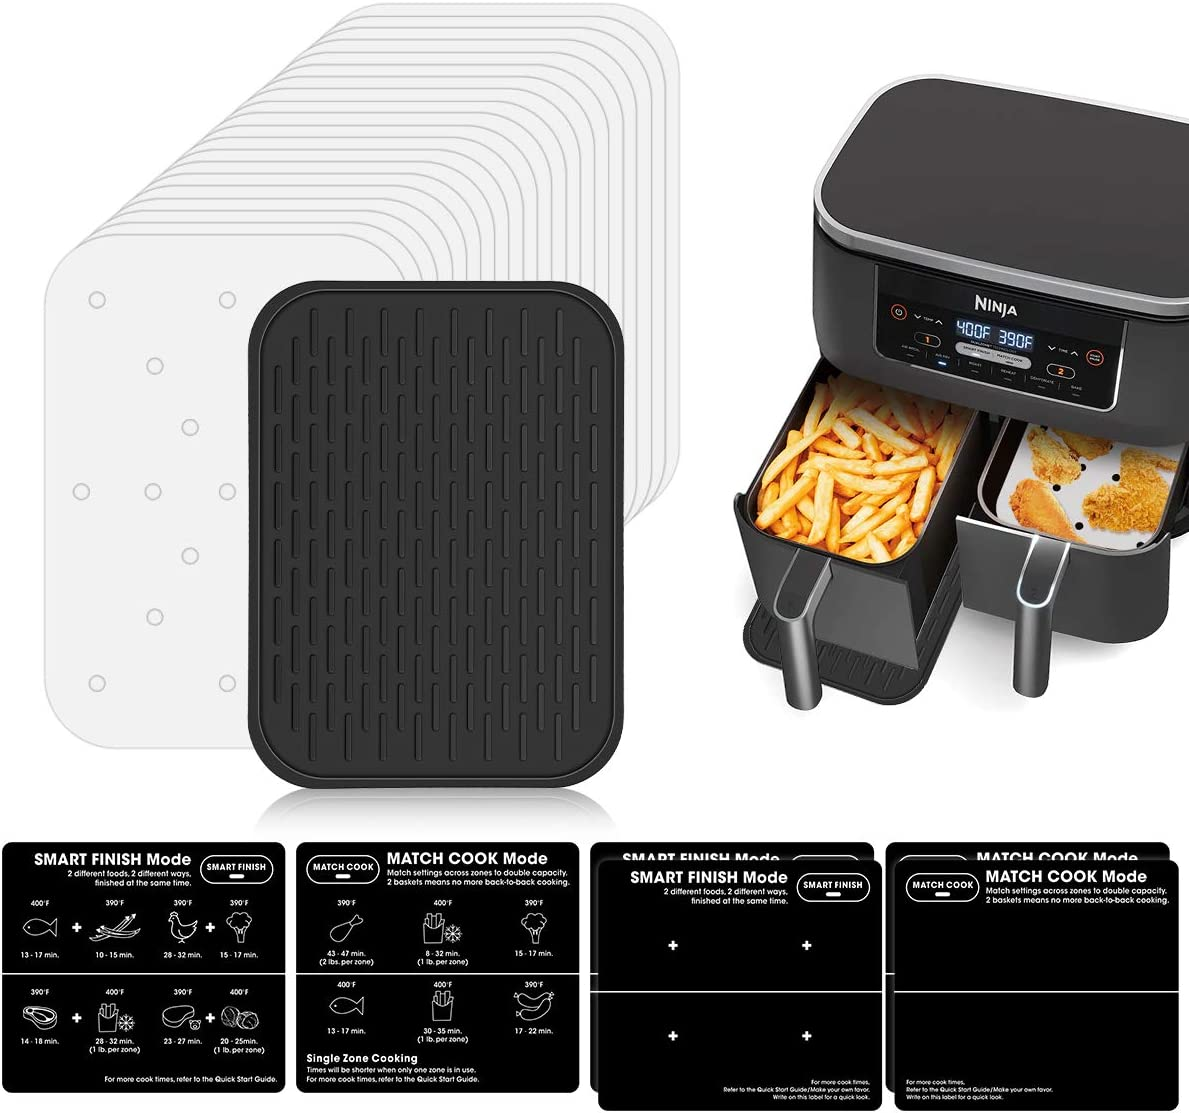 AIEVE Deluxe Accessories Set for Ninja Foodi Dual Basket Air Fryer, 100Pcs Air Fryer Liners, DIY Blank Stickers and Silicone Pad, Professional Designed for Ninja DZ201 Double Air Fryer Dual Basket